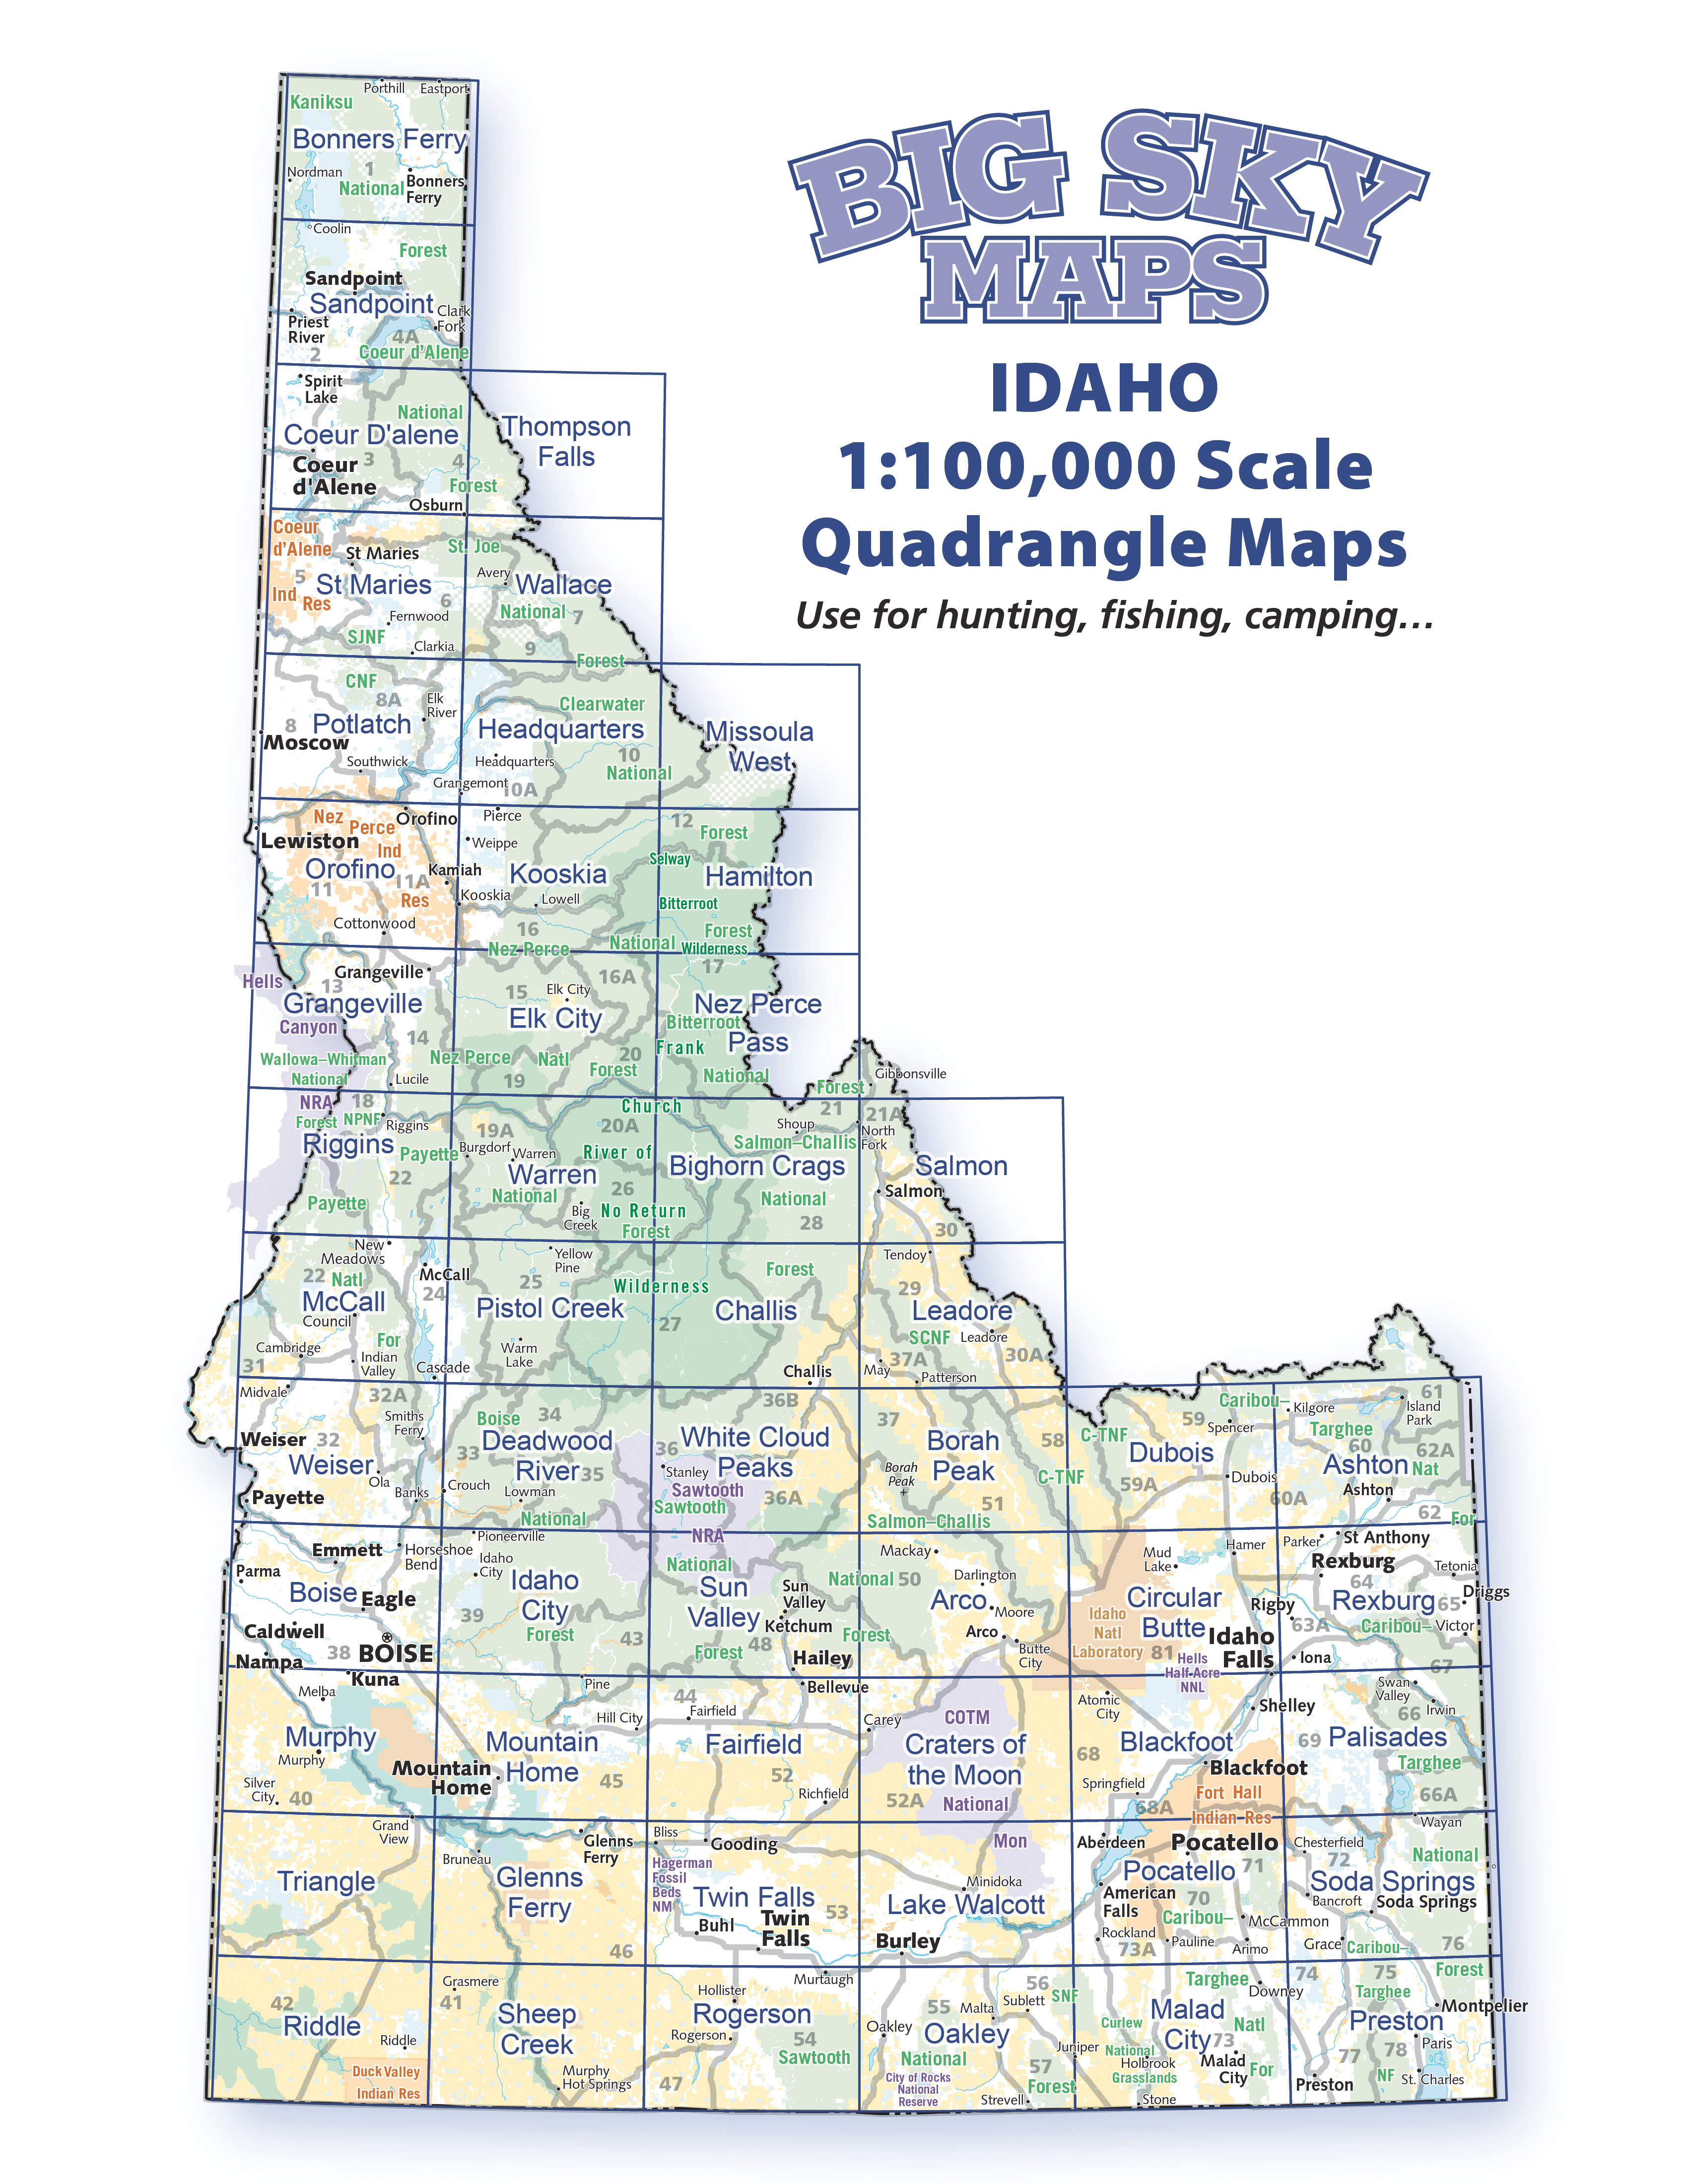 Idaho 1:100,000 Scale Quadrangles